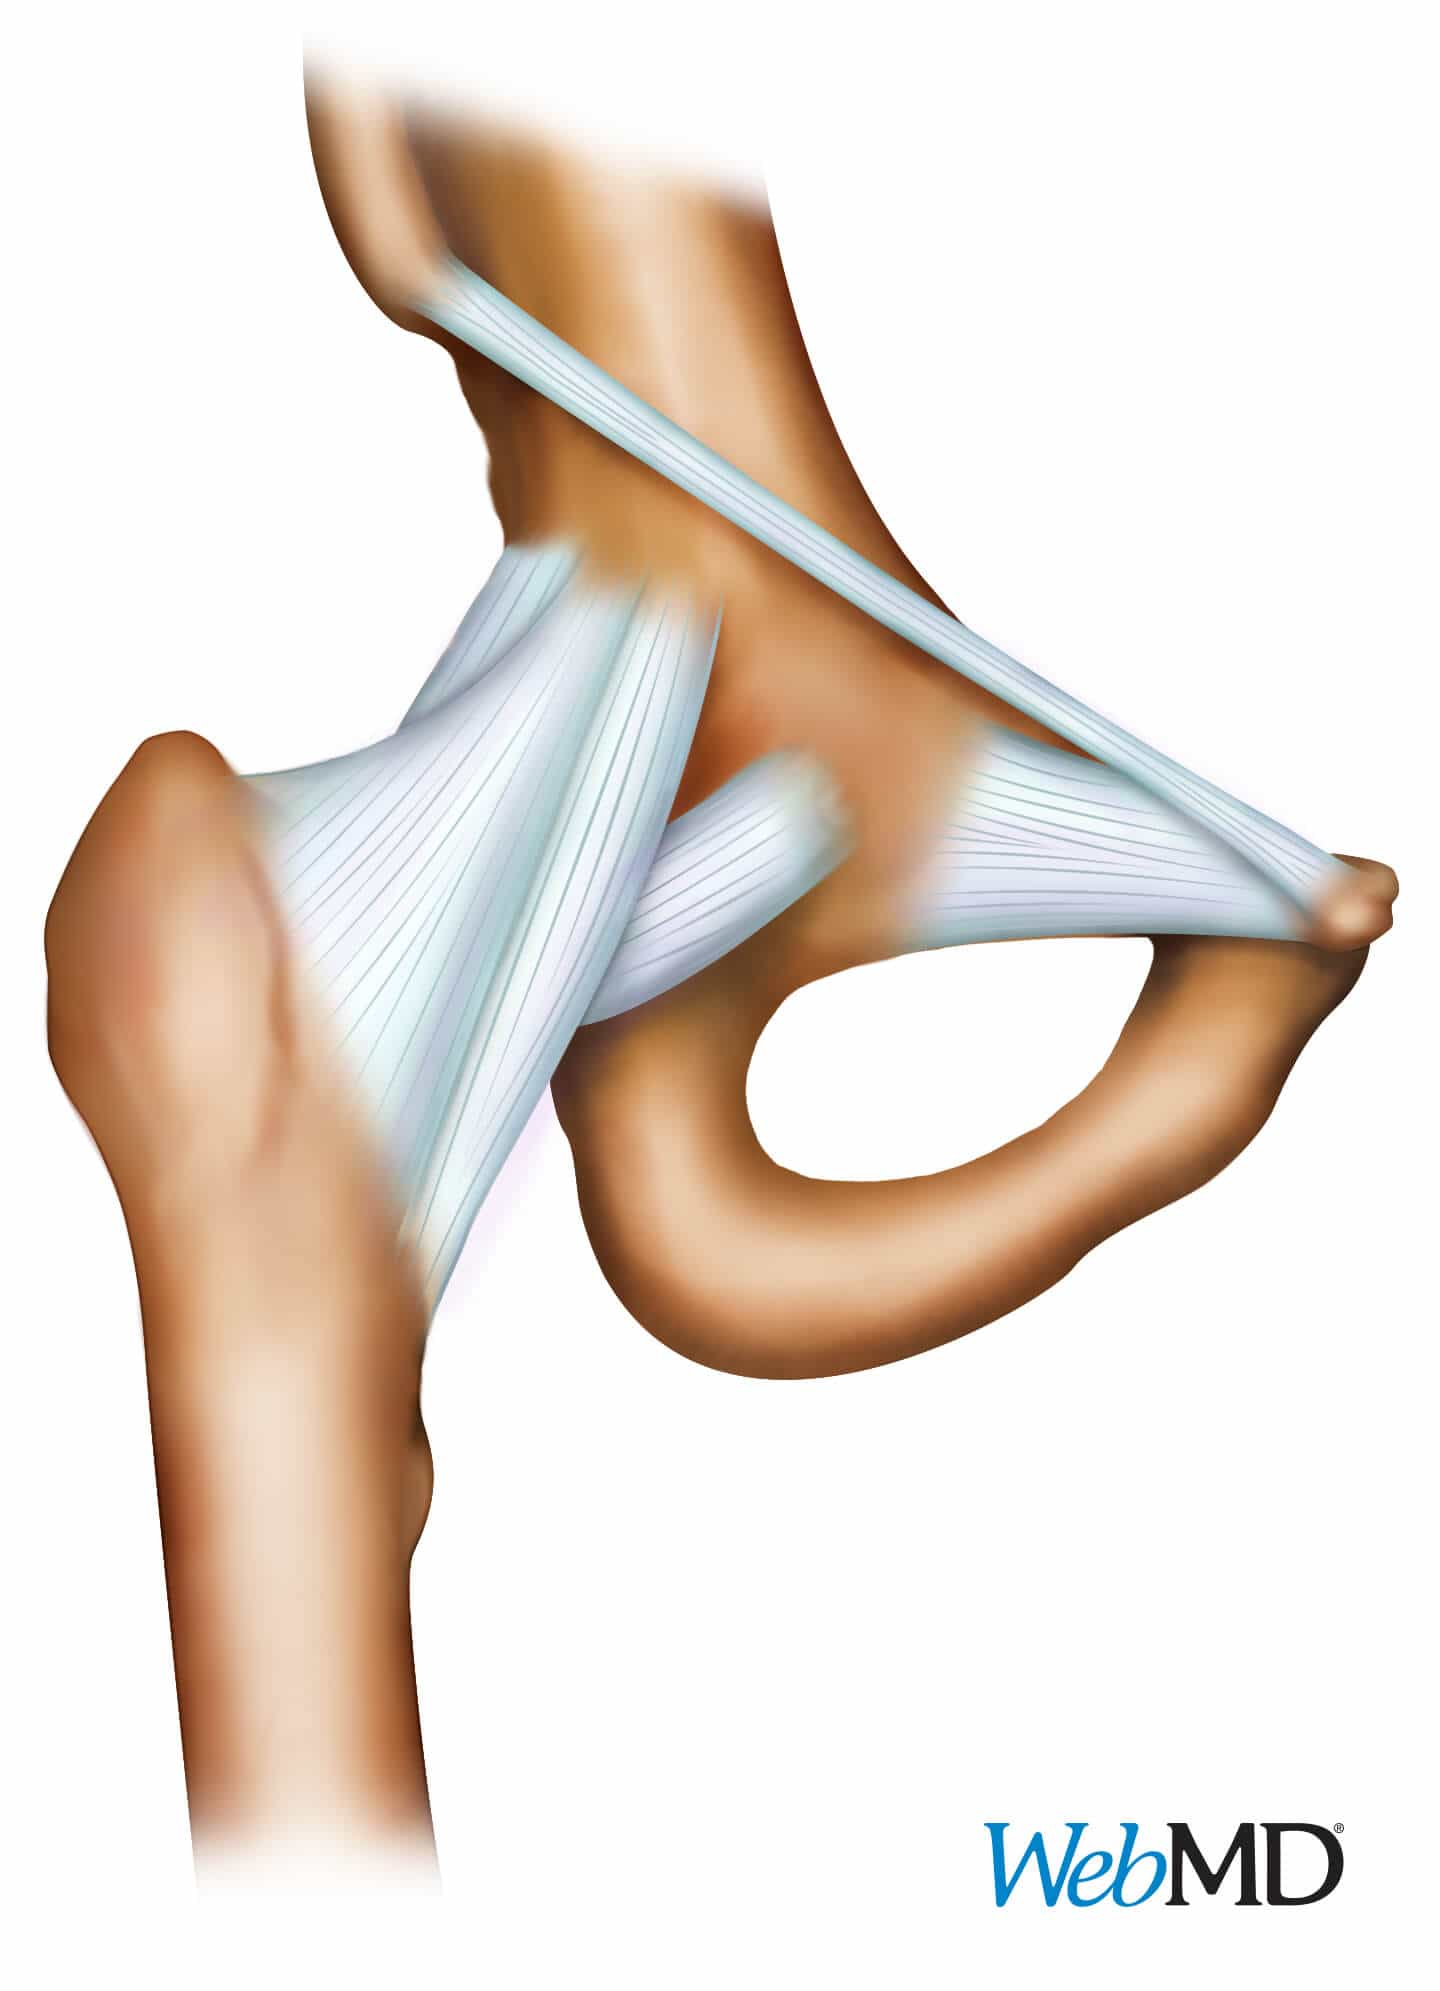 WebMD Illustrations - Hip Ligament